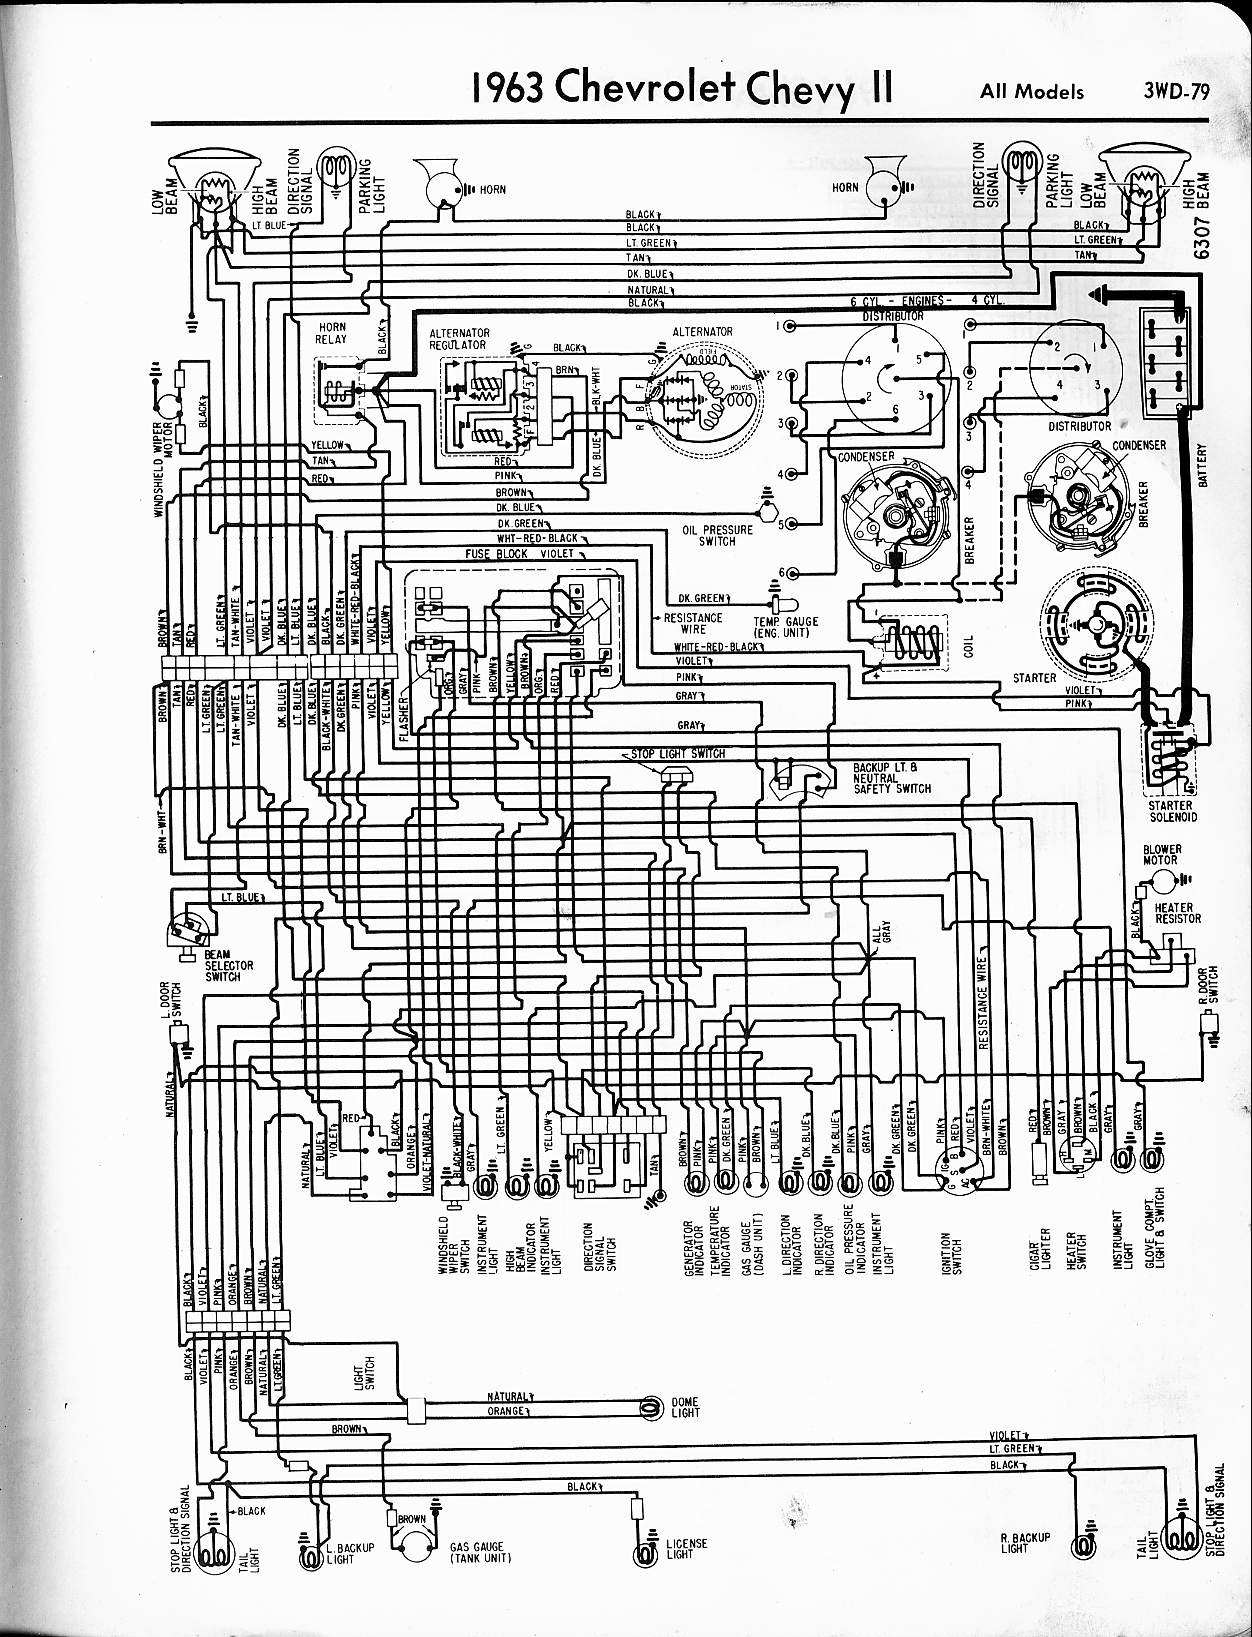 WRG-1822] Key And Ignition Switch Wiring Diagram 2004 Impala Pic